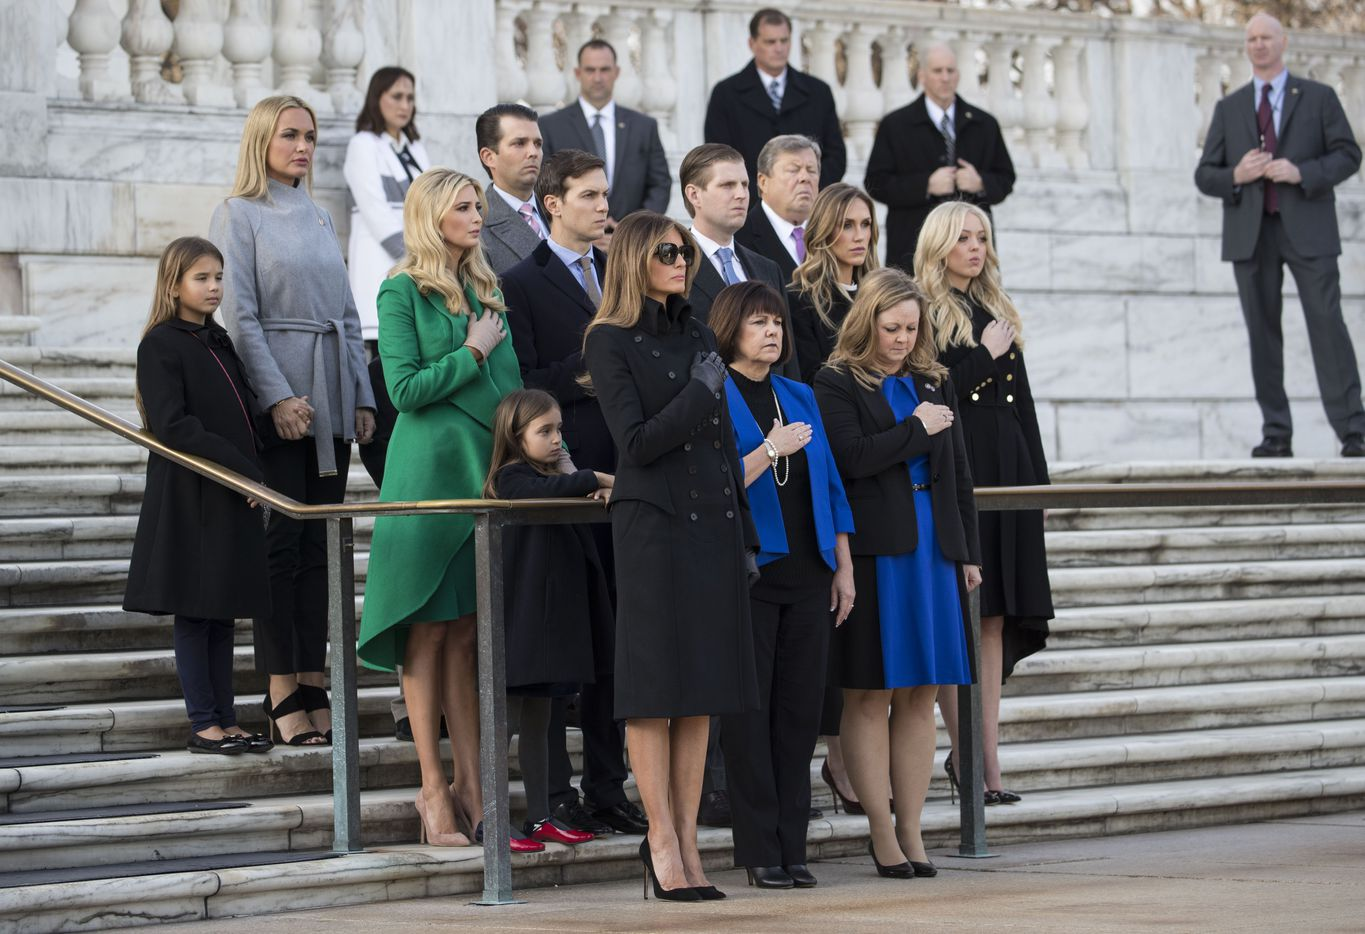 The families of Donald Trump and Mike Pence look on as the president-elect and vice president-elect left a wreath at the Tomb of the Unknowns, at Arlington National Cemetery in Arlington, Va., Jan. 19, 2017. In the front row at left is Melania Trump; next to her is Karen Pence.